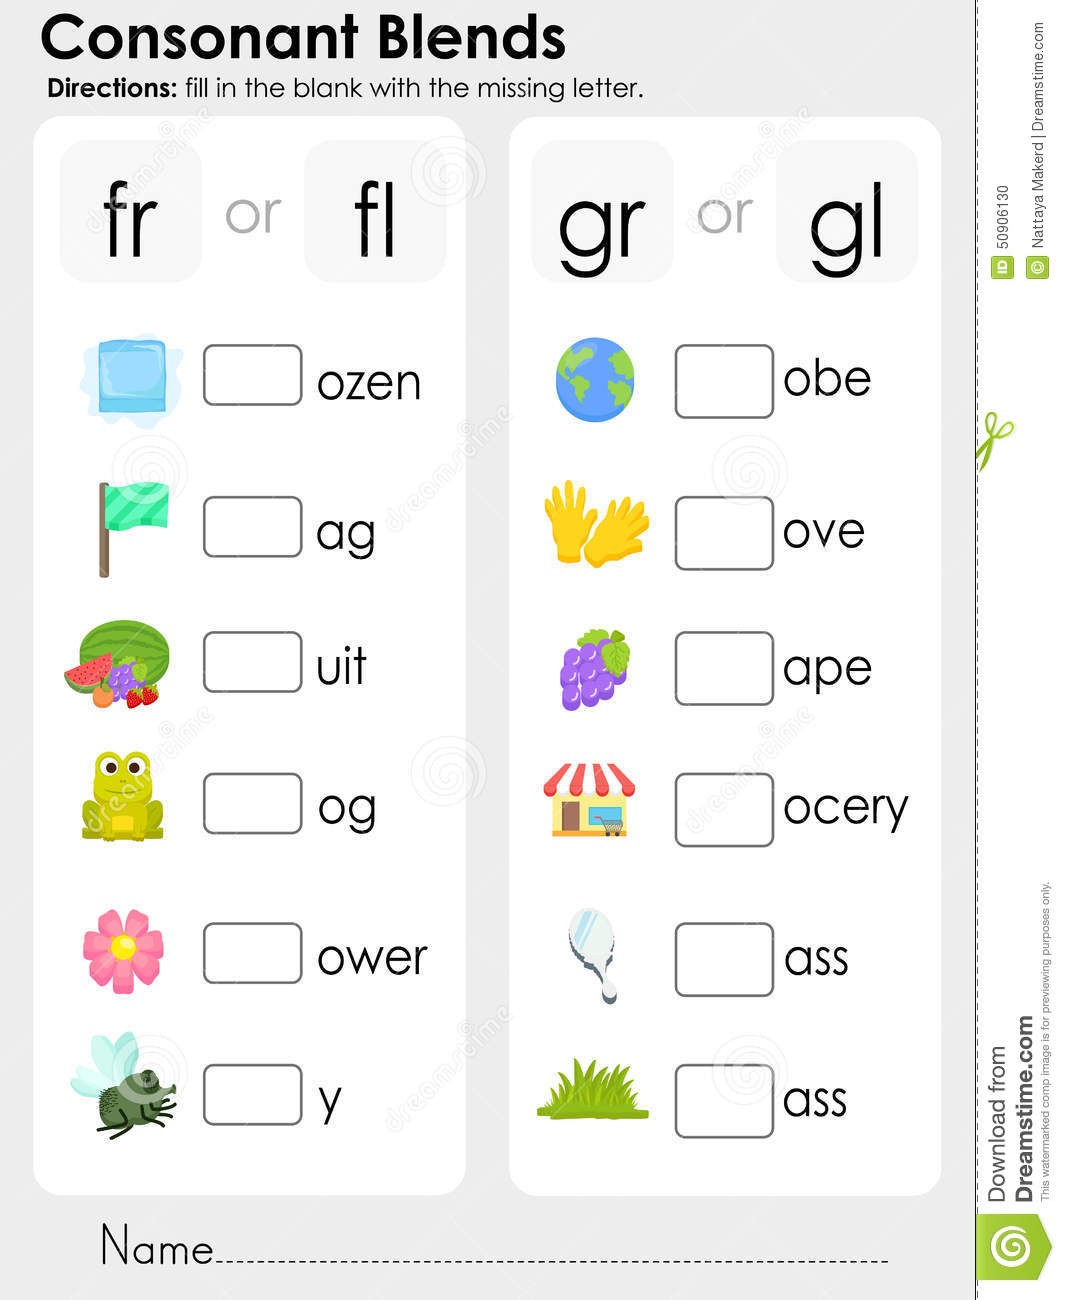 Consonant Blends Worksheets For Kindergarten Scalien – Consonant Blends Worksheets for Kindergarten